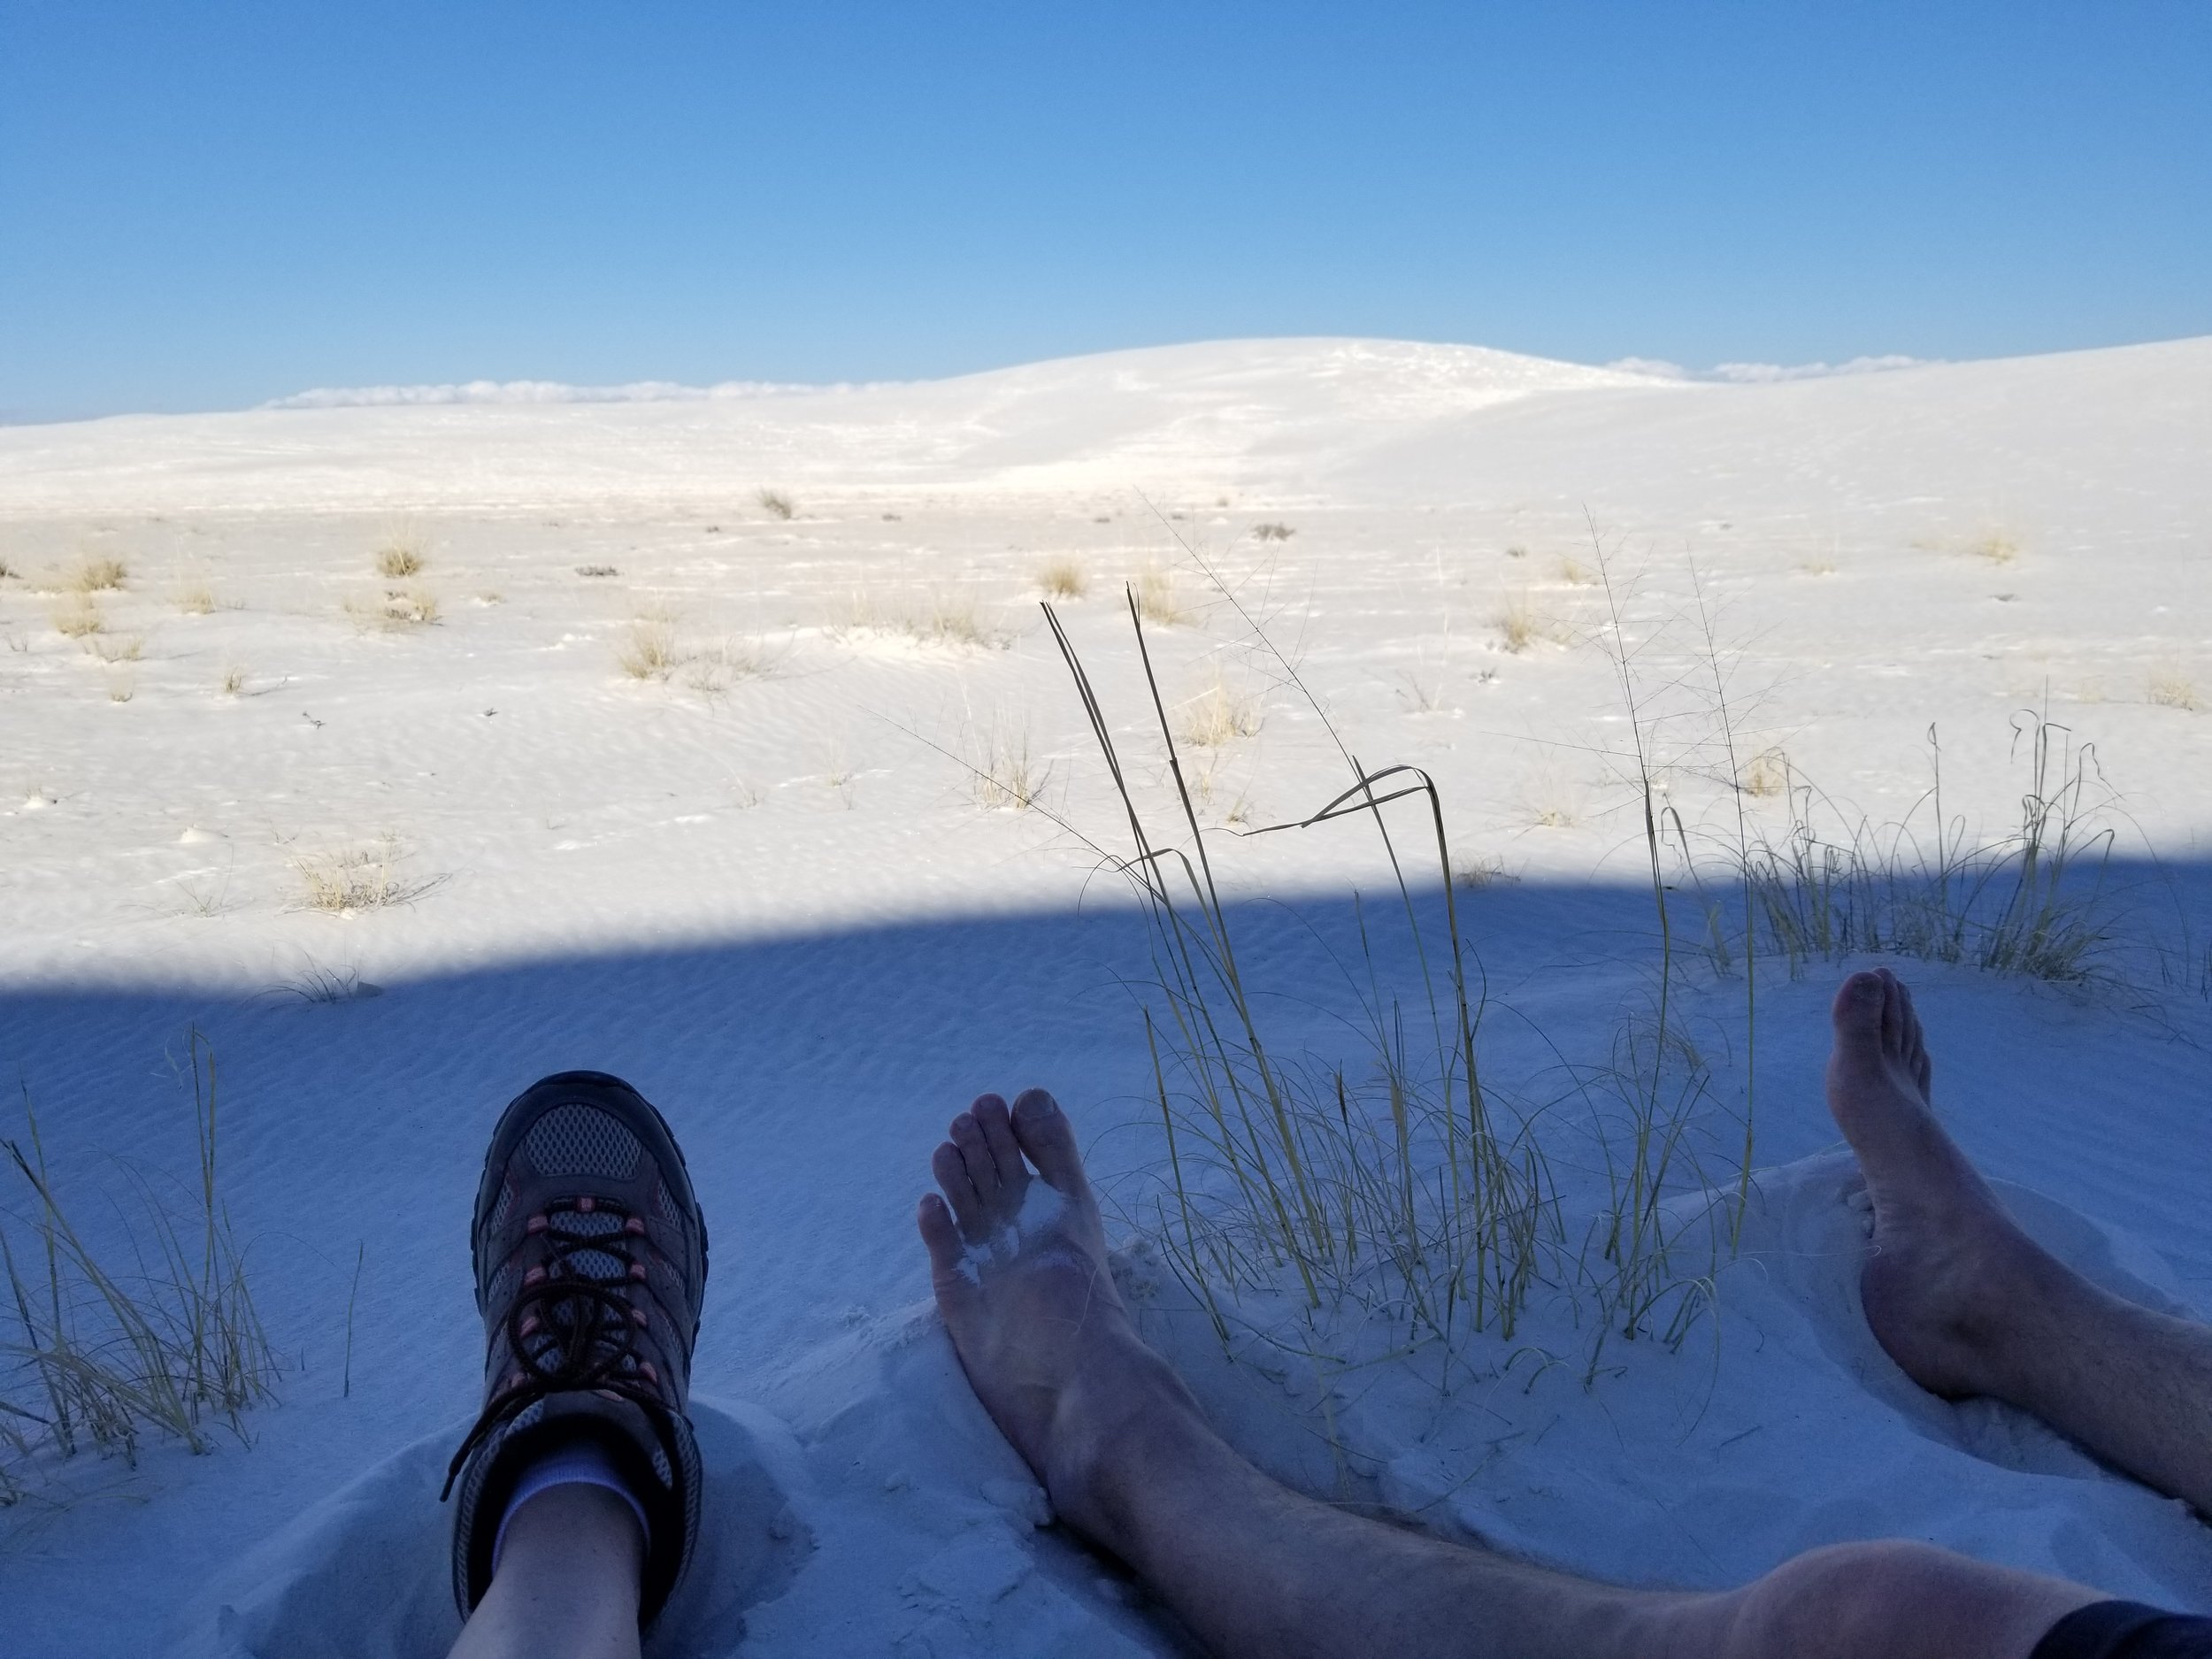 We found a shady spot on the back side of a dune and took a break. The sand was so cool. It felt awesome.